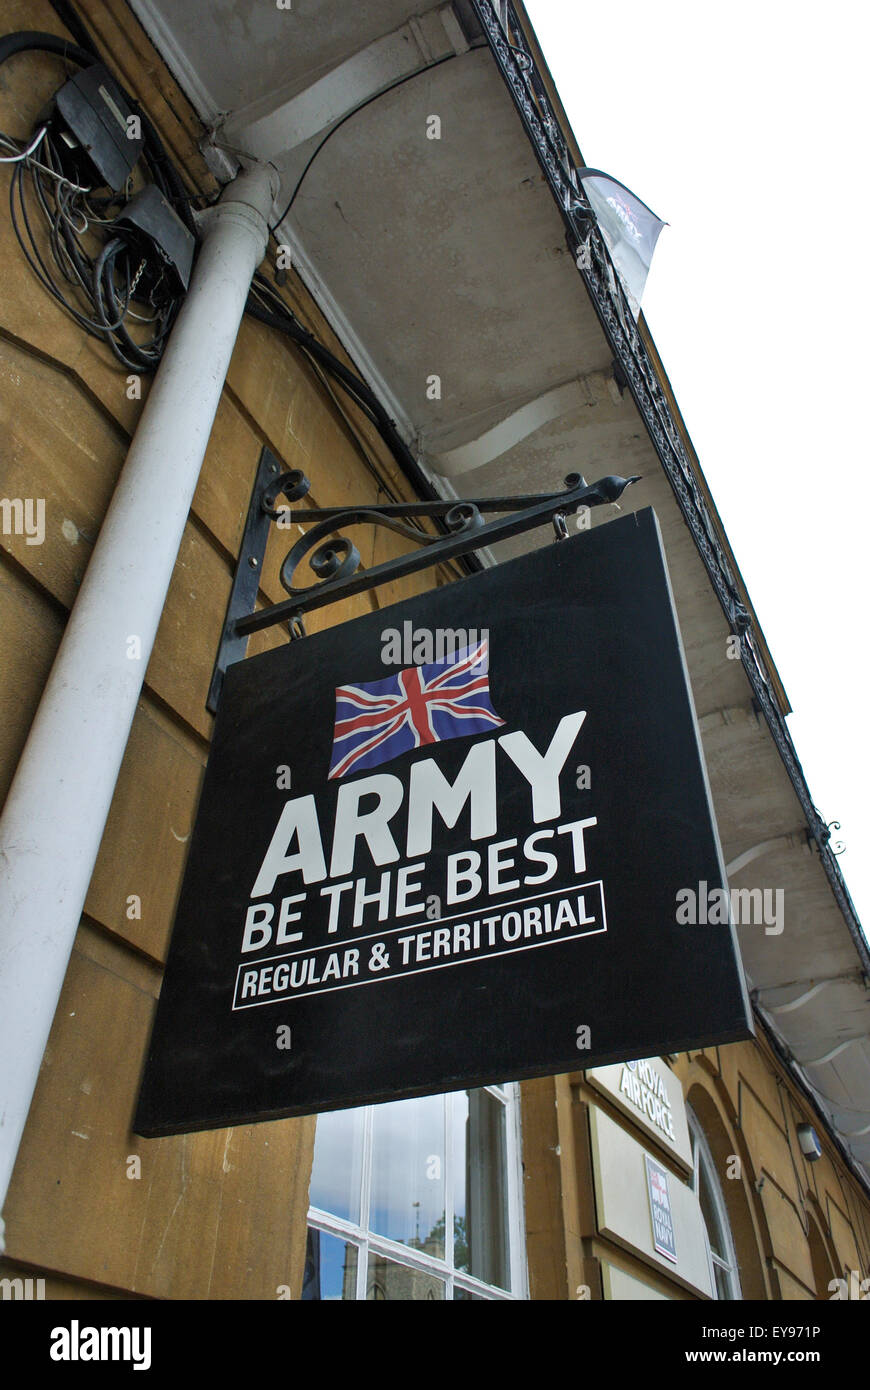 Army Air Force Navy careers office Oxford UK - Stock Image